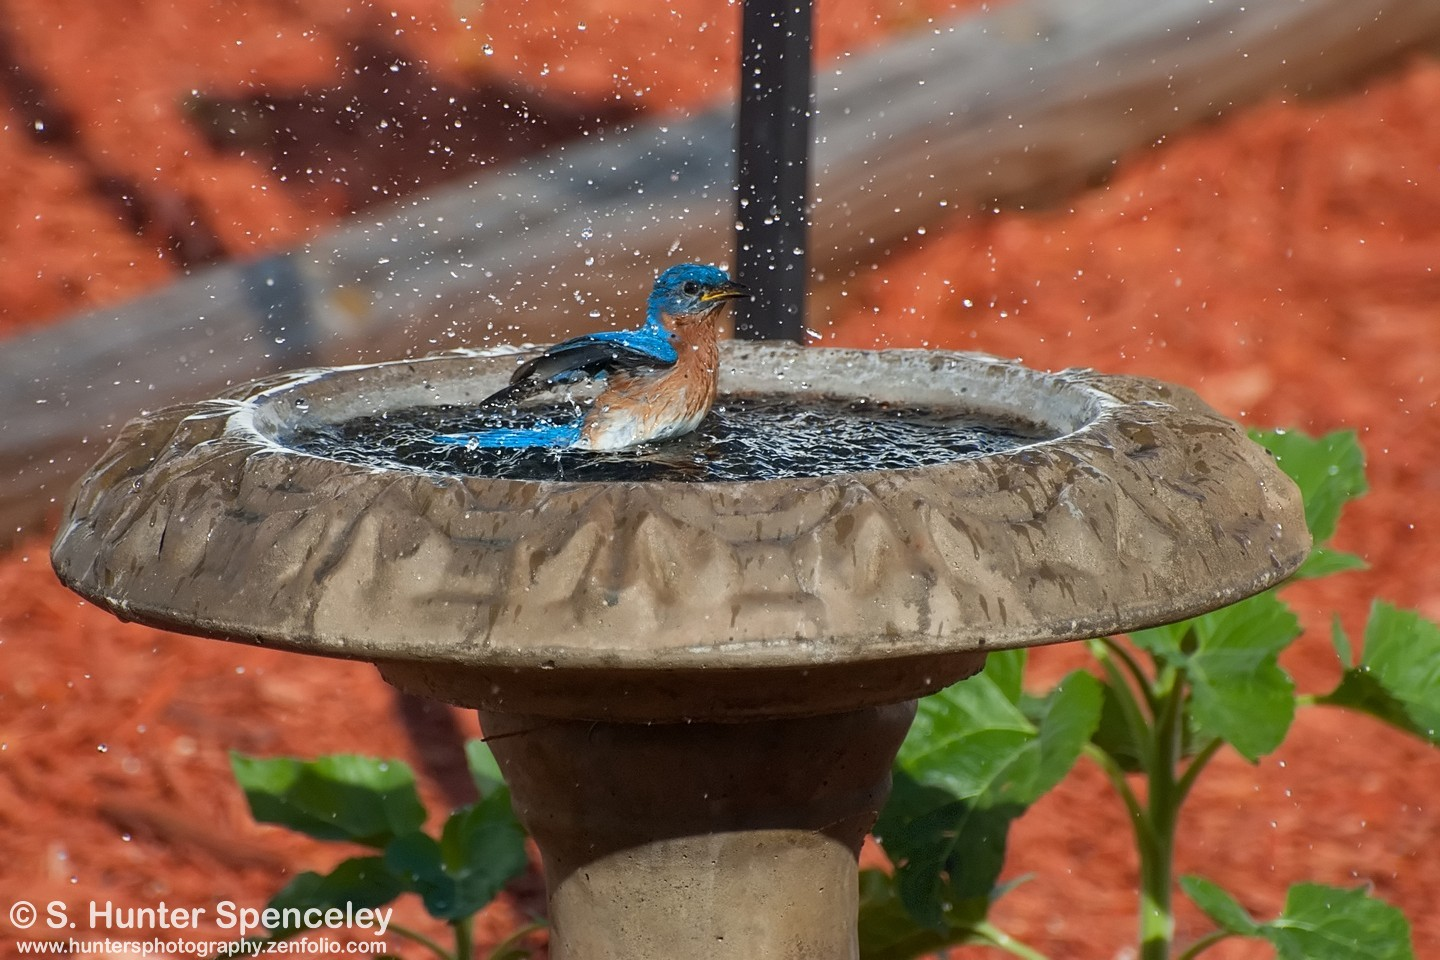 Julie Craves explains how to mosquito-proof your birdbath